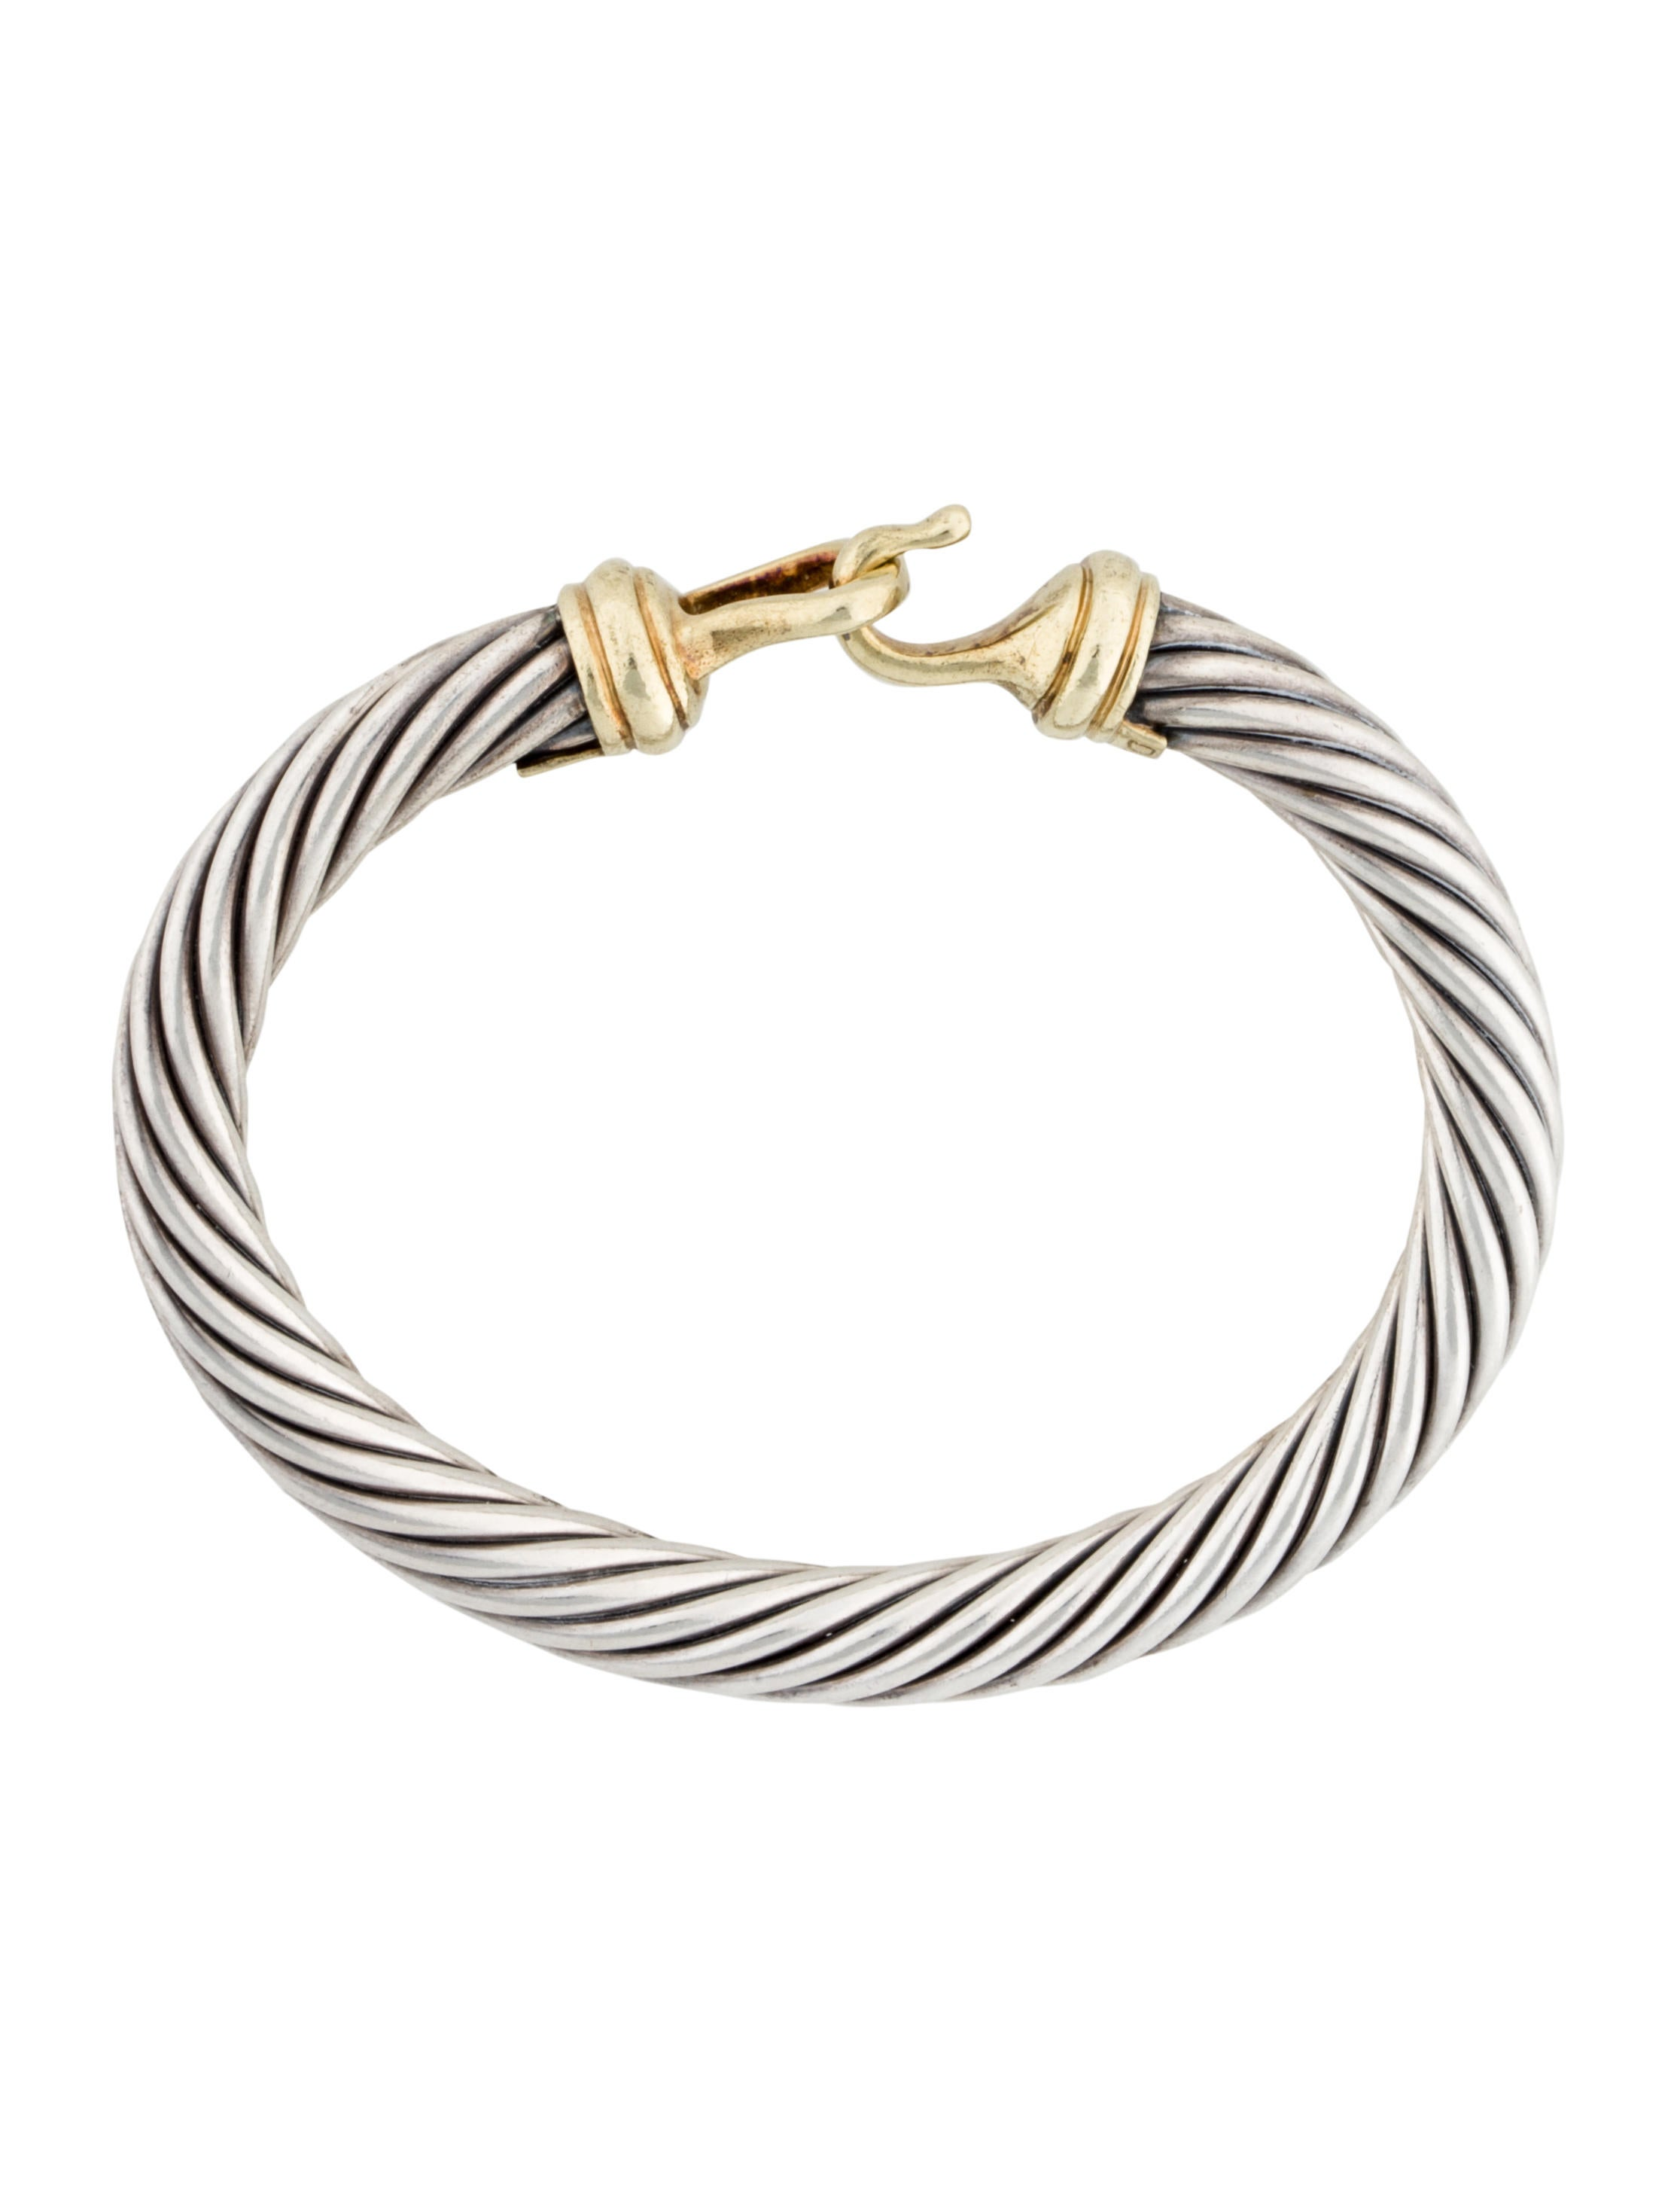 David yurman cable buckle bracelet bracelets dvy29013 for David yurman inspired bracelet cable